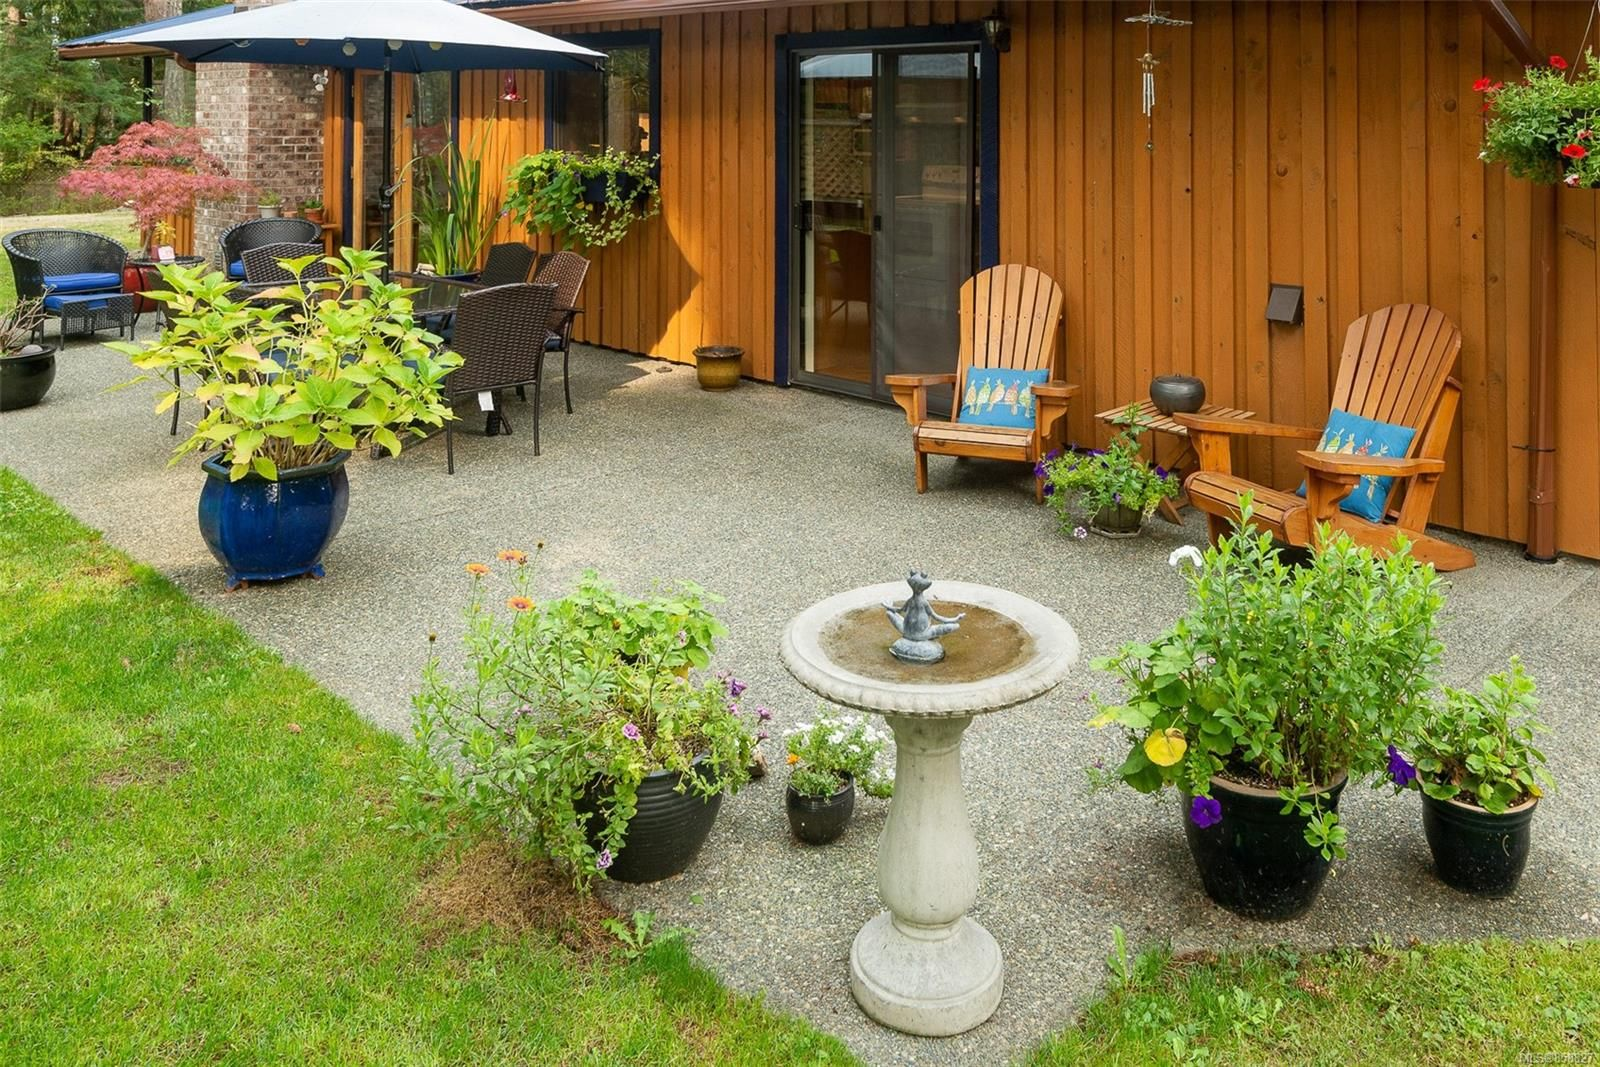 Photo 18: Photos: 1137 North End Rd in : GI Salt Spring House for sale (Gulf Islands)  : MLS®# 858827